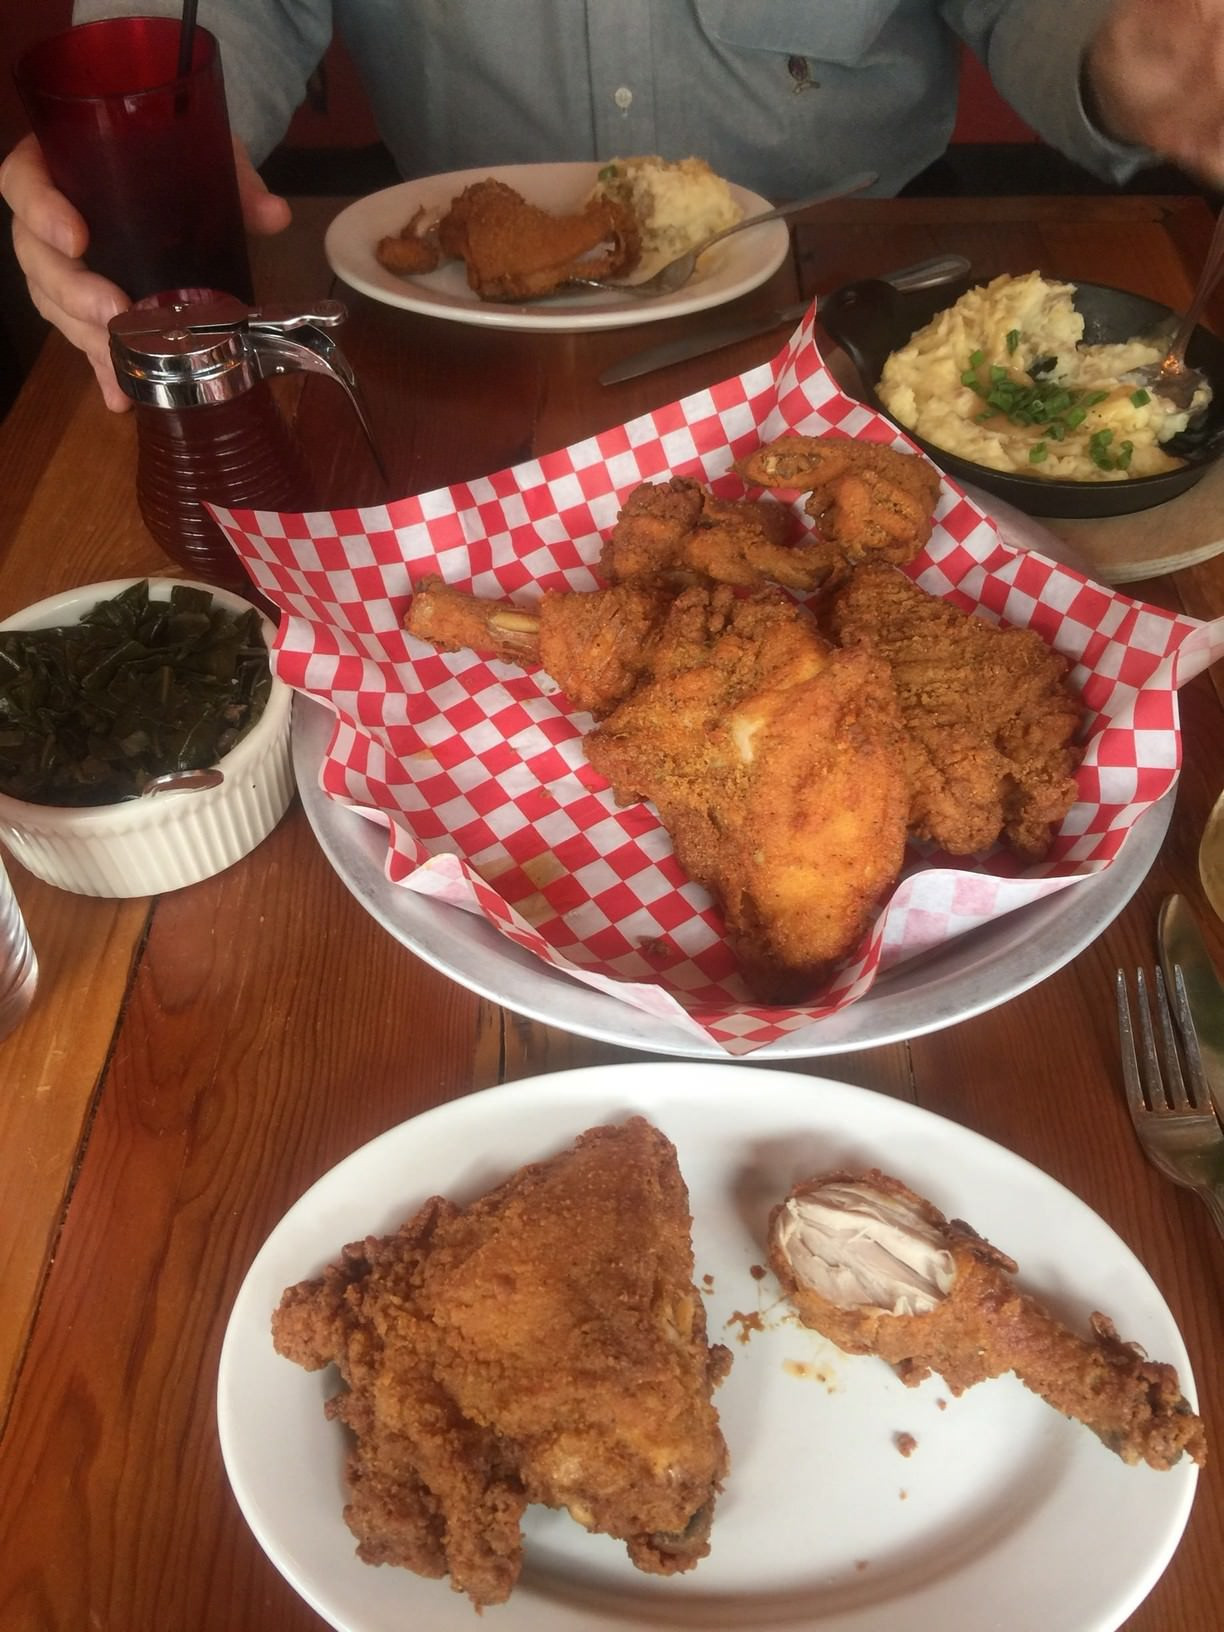 Best Fried Chicken In Indianapolis  The Eagle Indianapolis Indiana Best fried chicken So